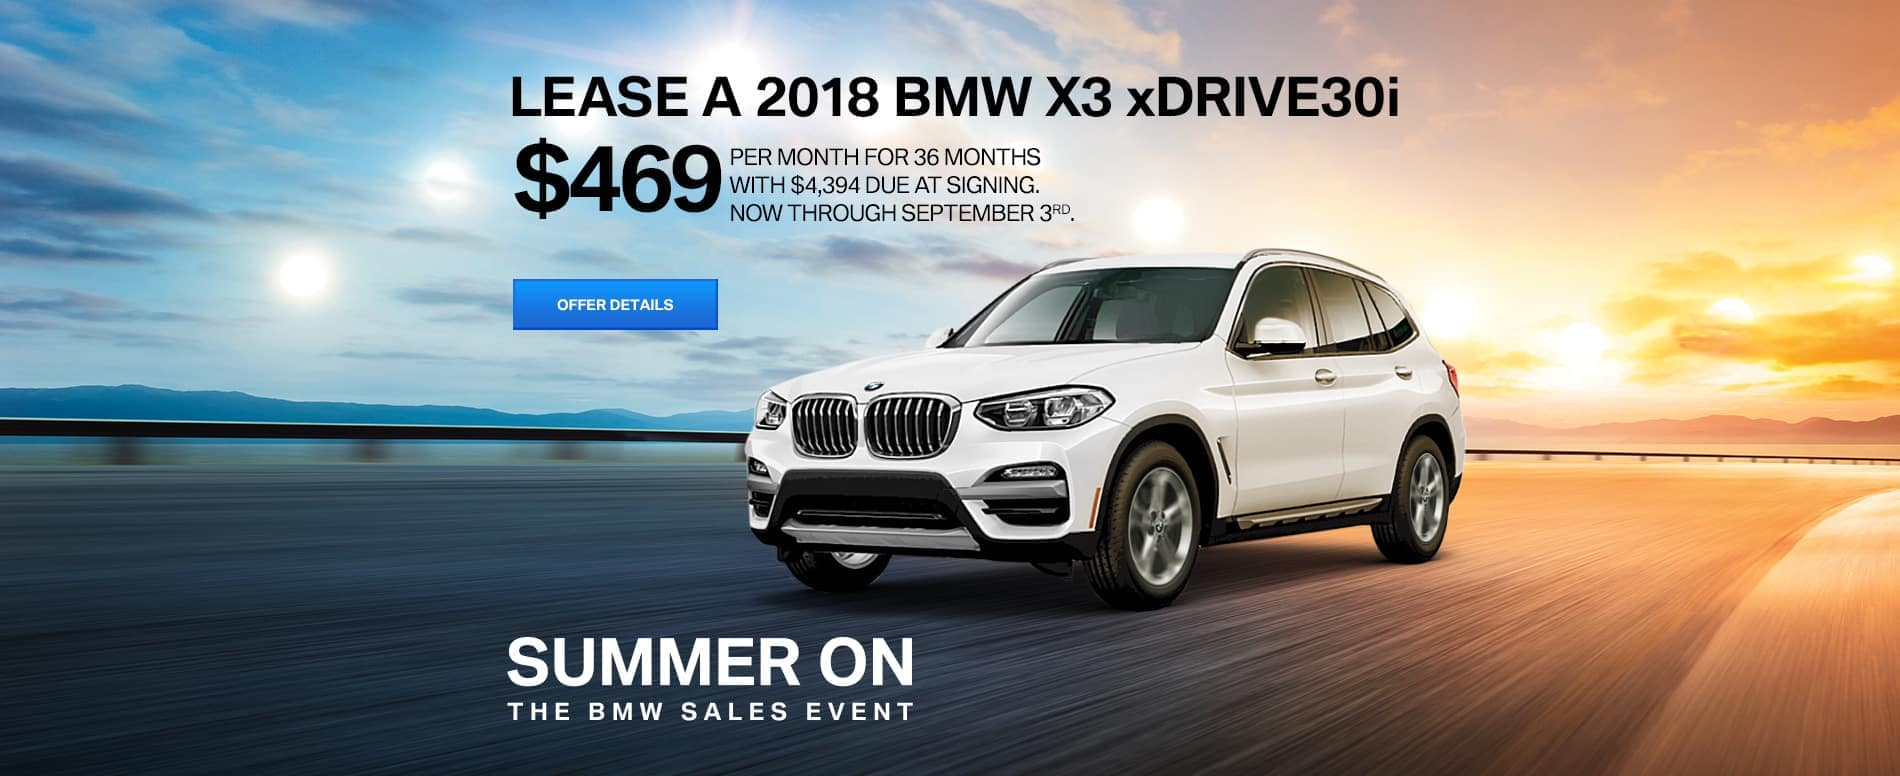 Summer_Sales_Event_X3_xDRIVE30i_469_Lease